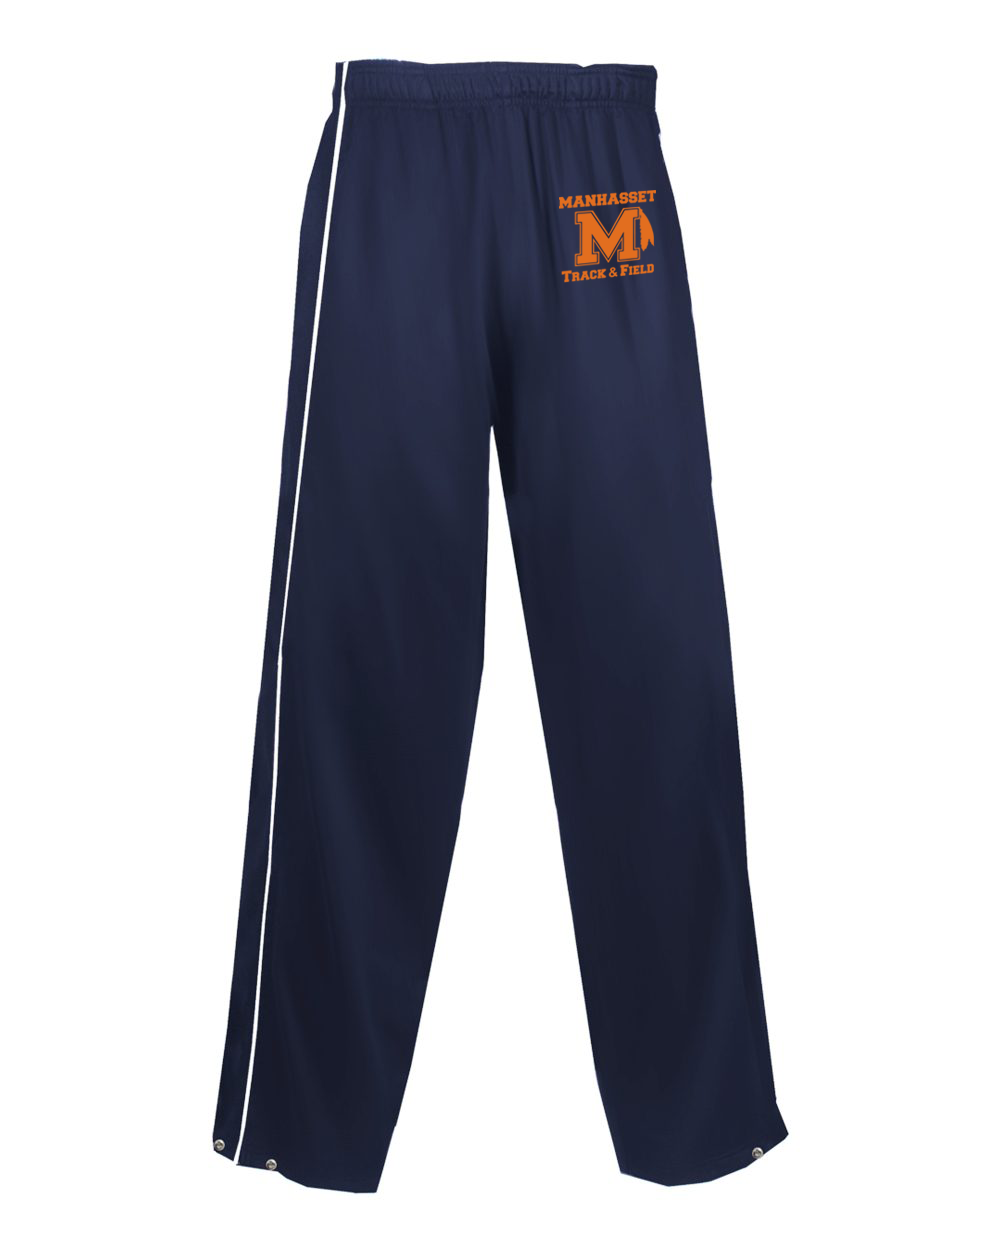 Manhasset Track & Field Adult Pants